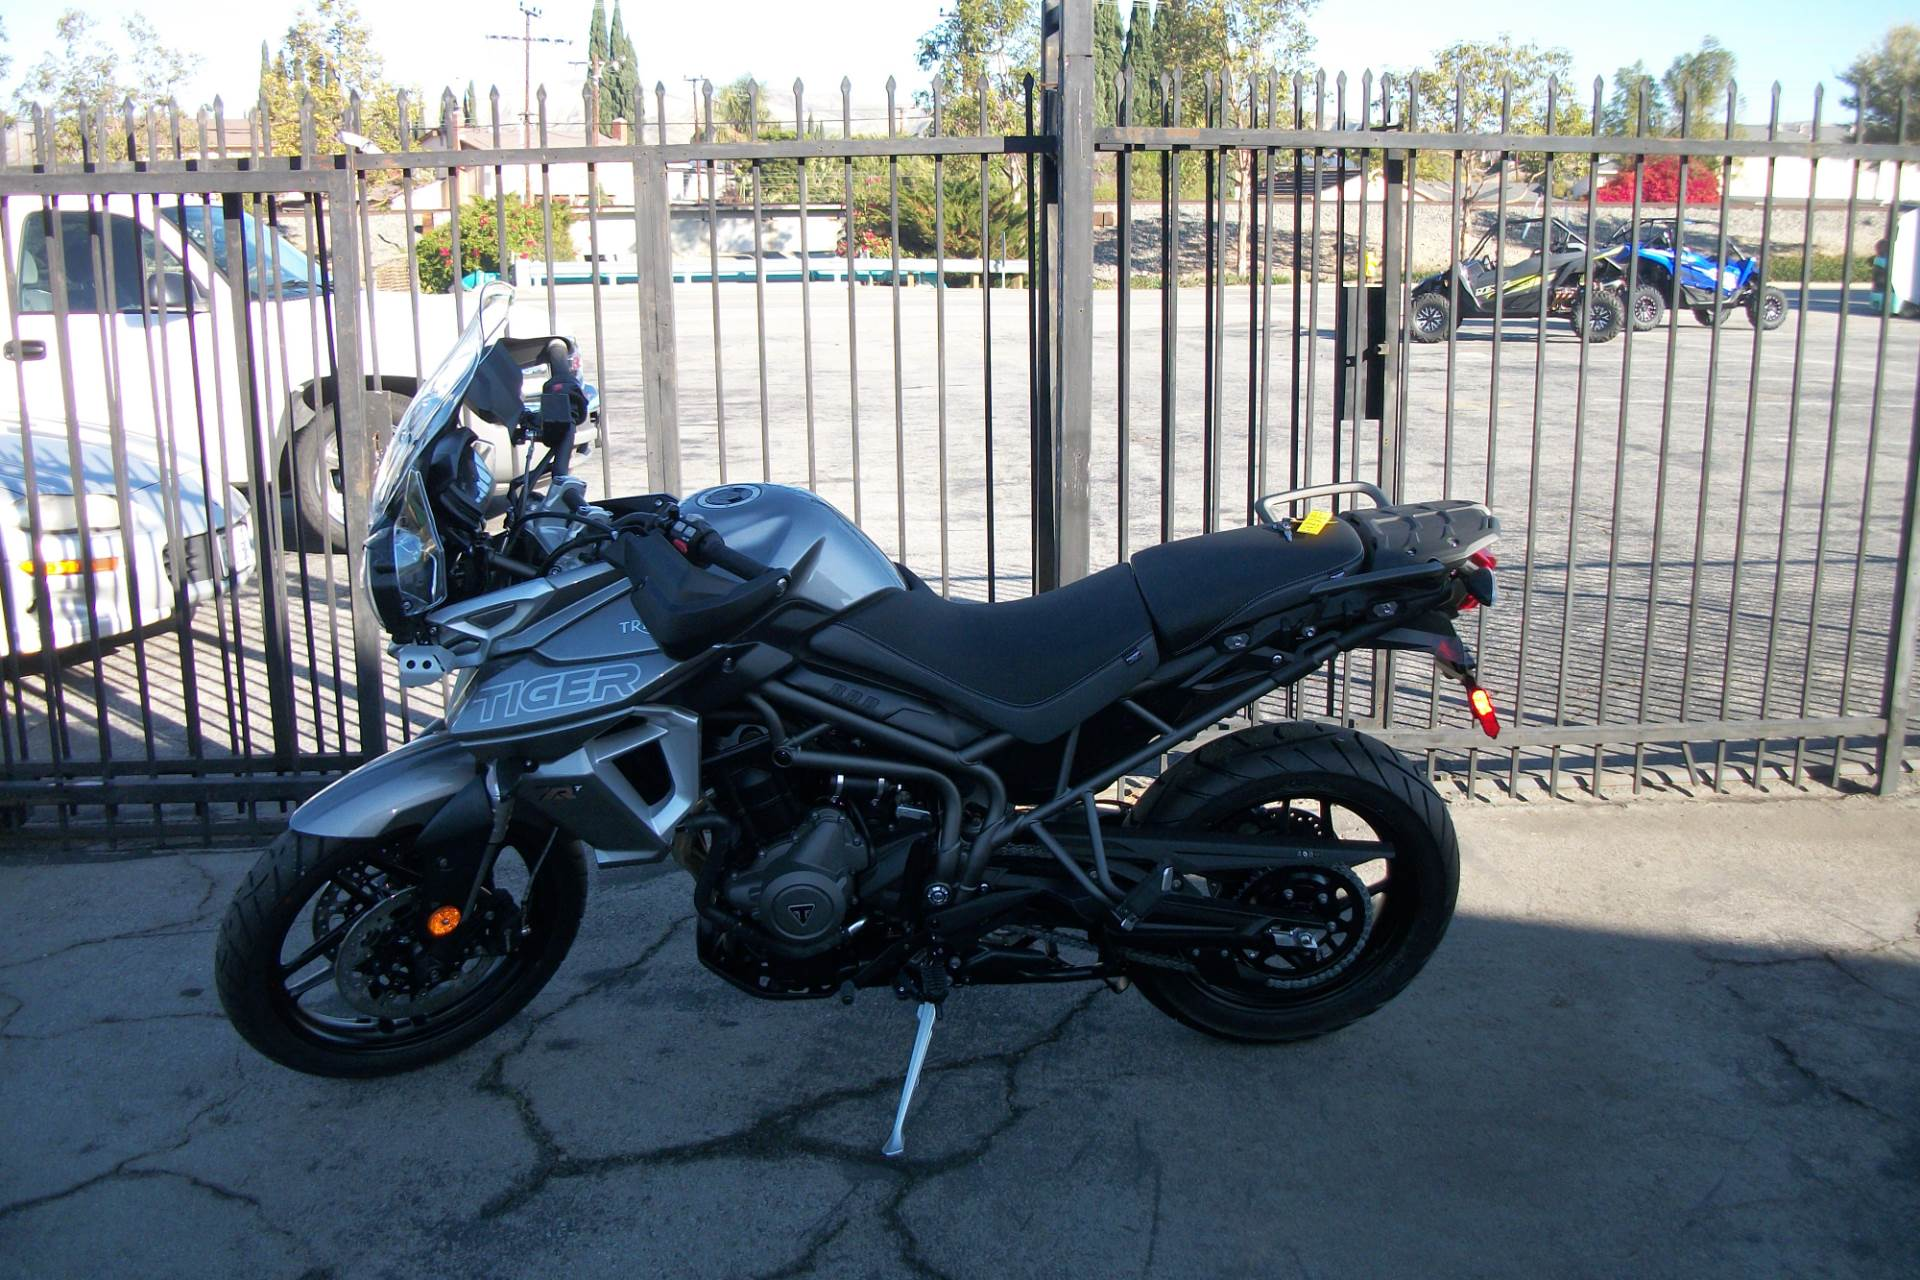 2019 Triumph Tiger 800 XRt in Simi Valley, California - Photo 1